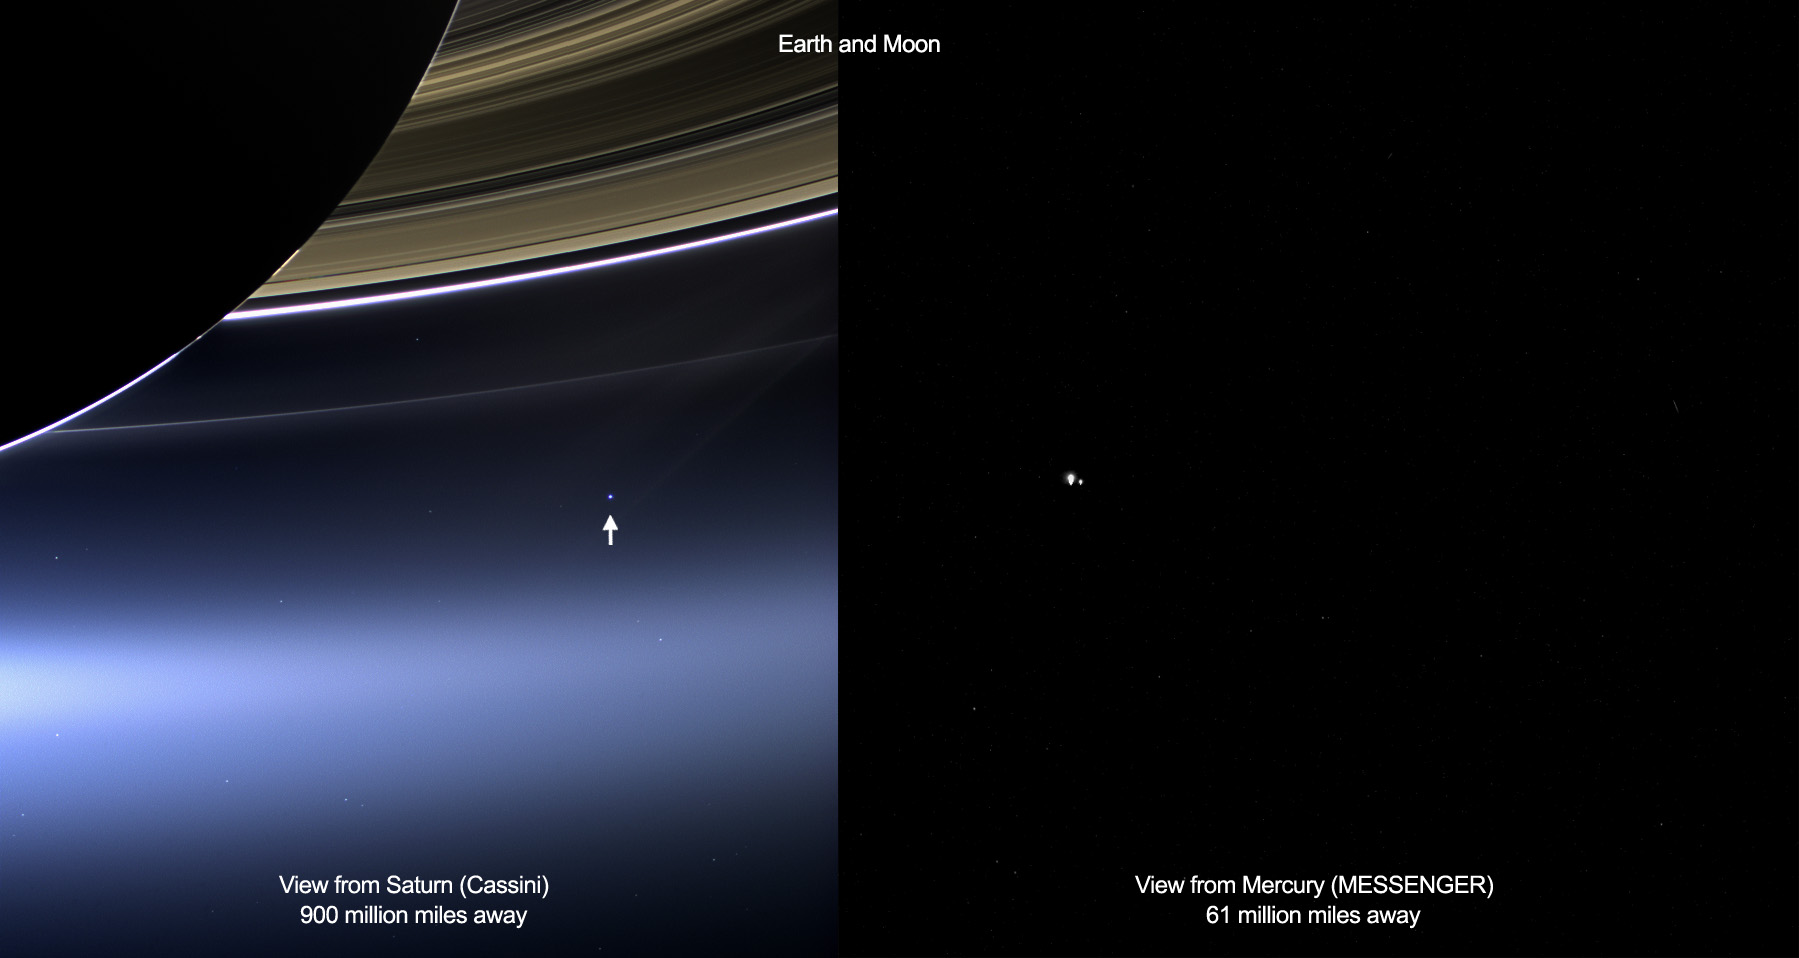 Cassini image of Earth